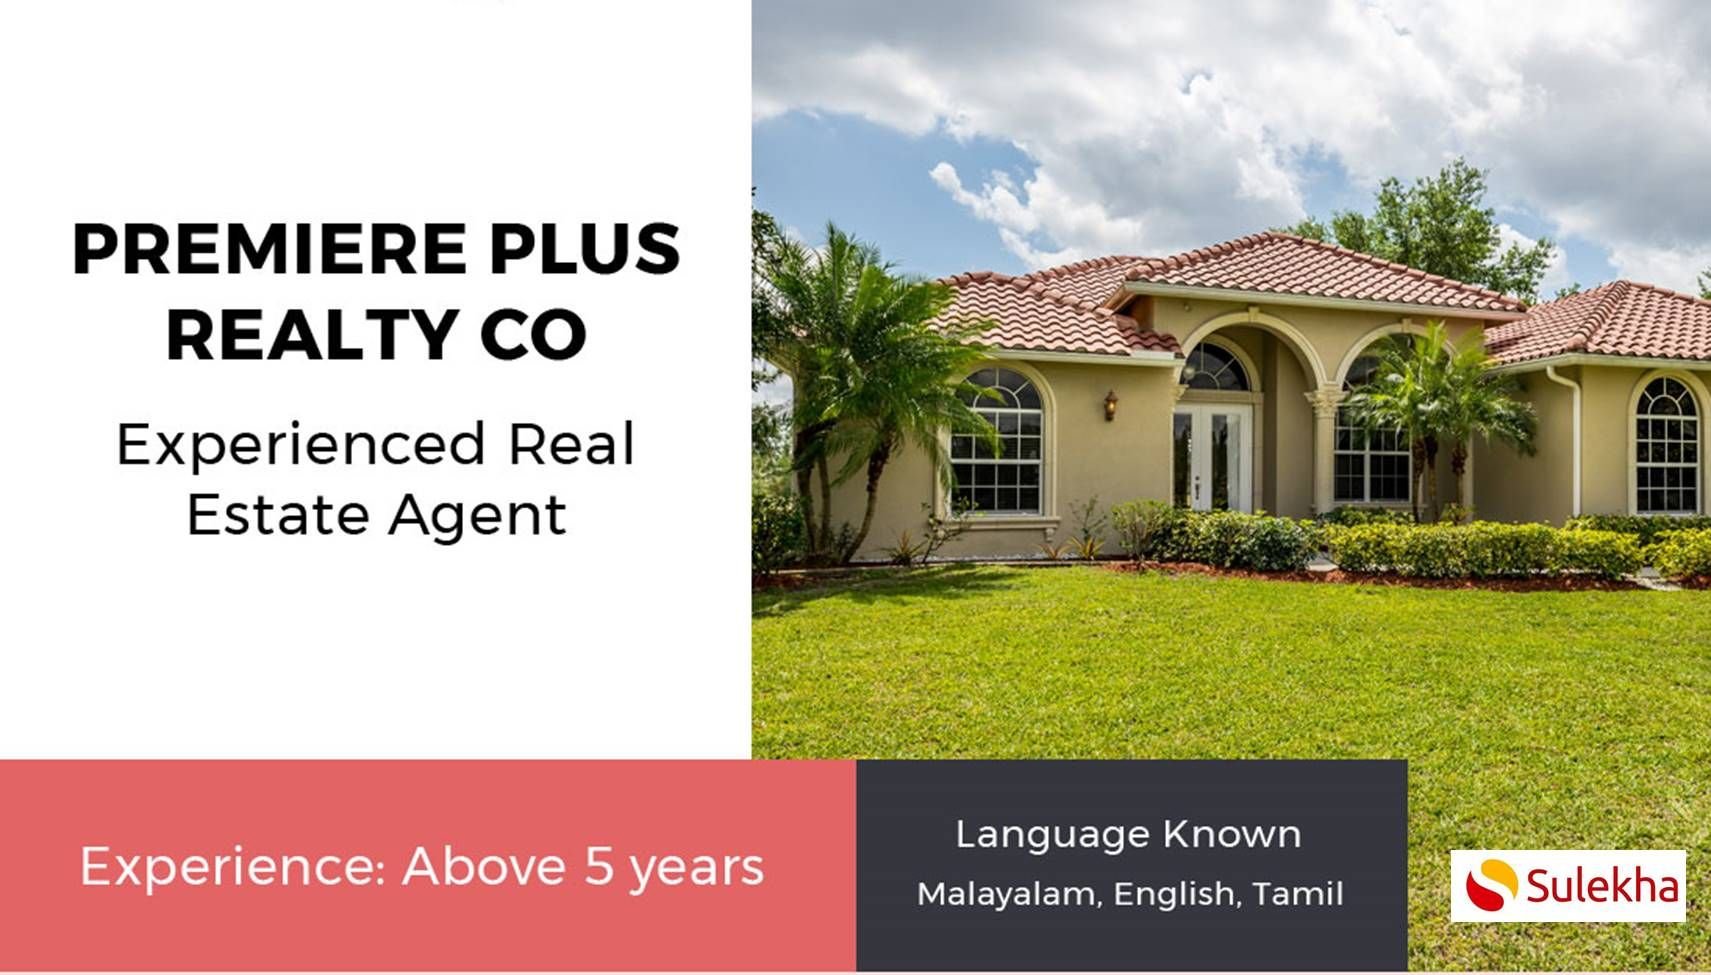 Make your real estate come true with Premiere Plus Realty, buy and sell now  #realestate #Realty #Florida #Naples #RealEstateCommercialAgents #Land #SingleFamilyHome